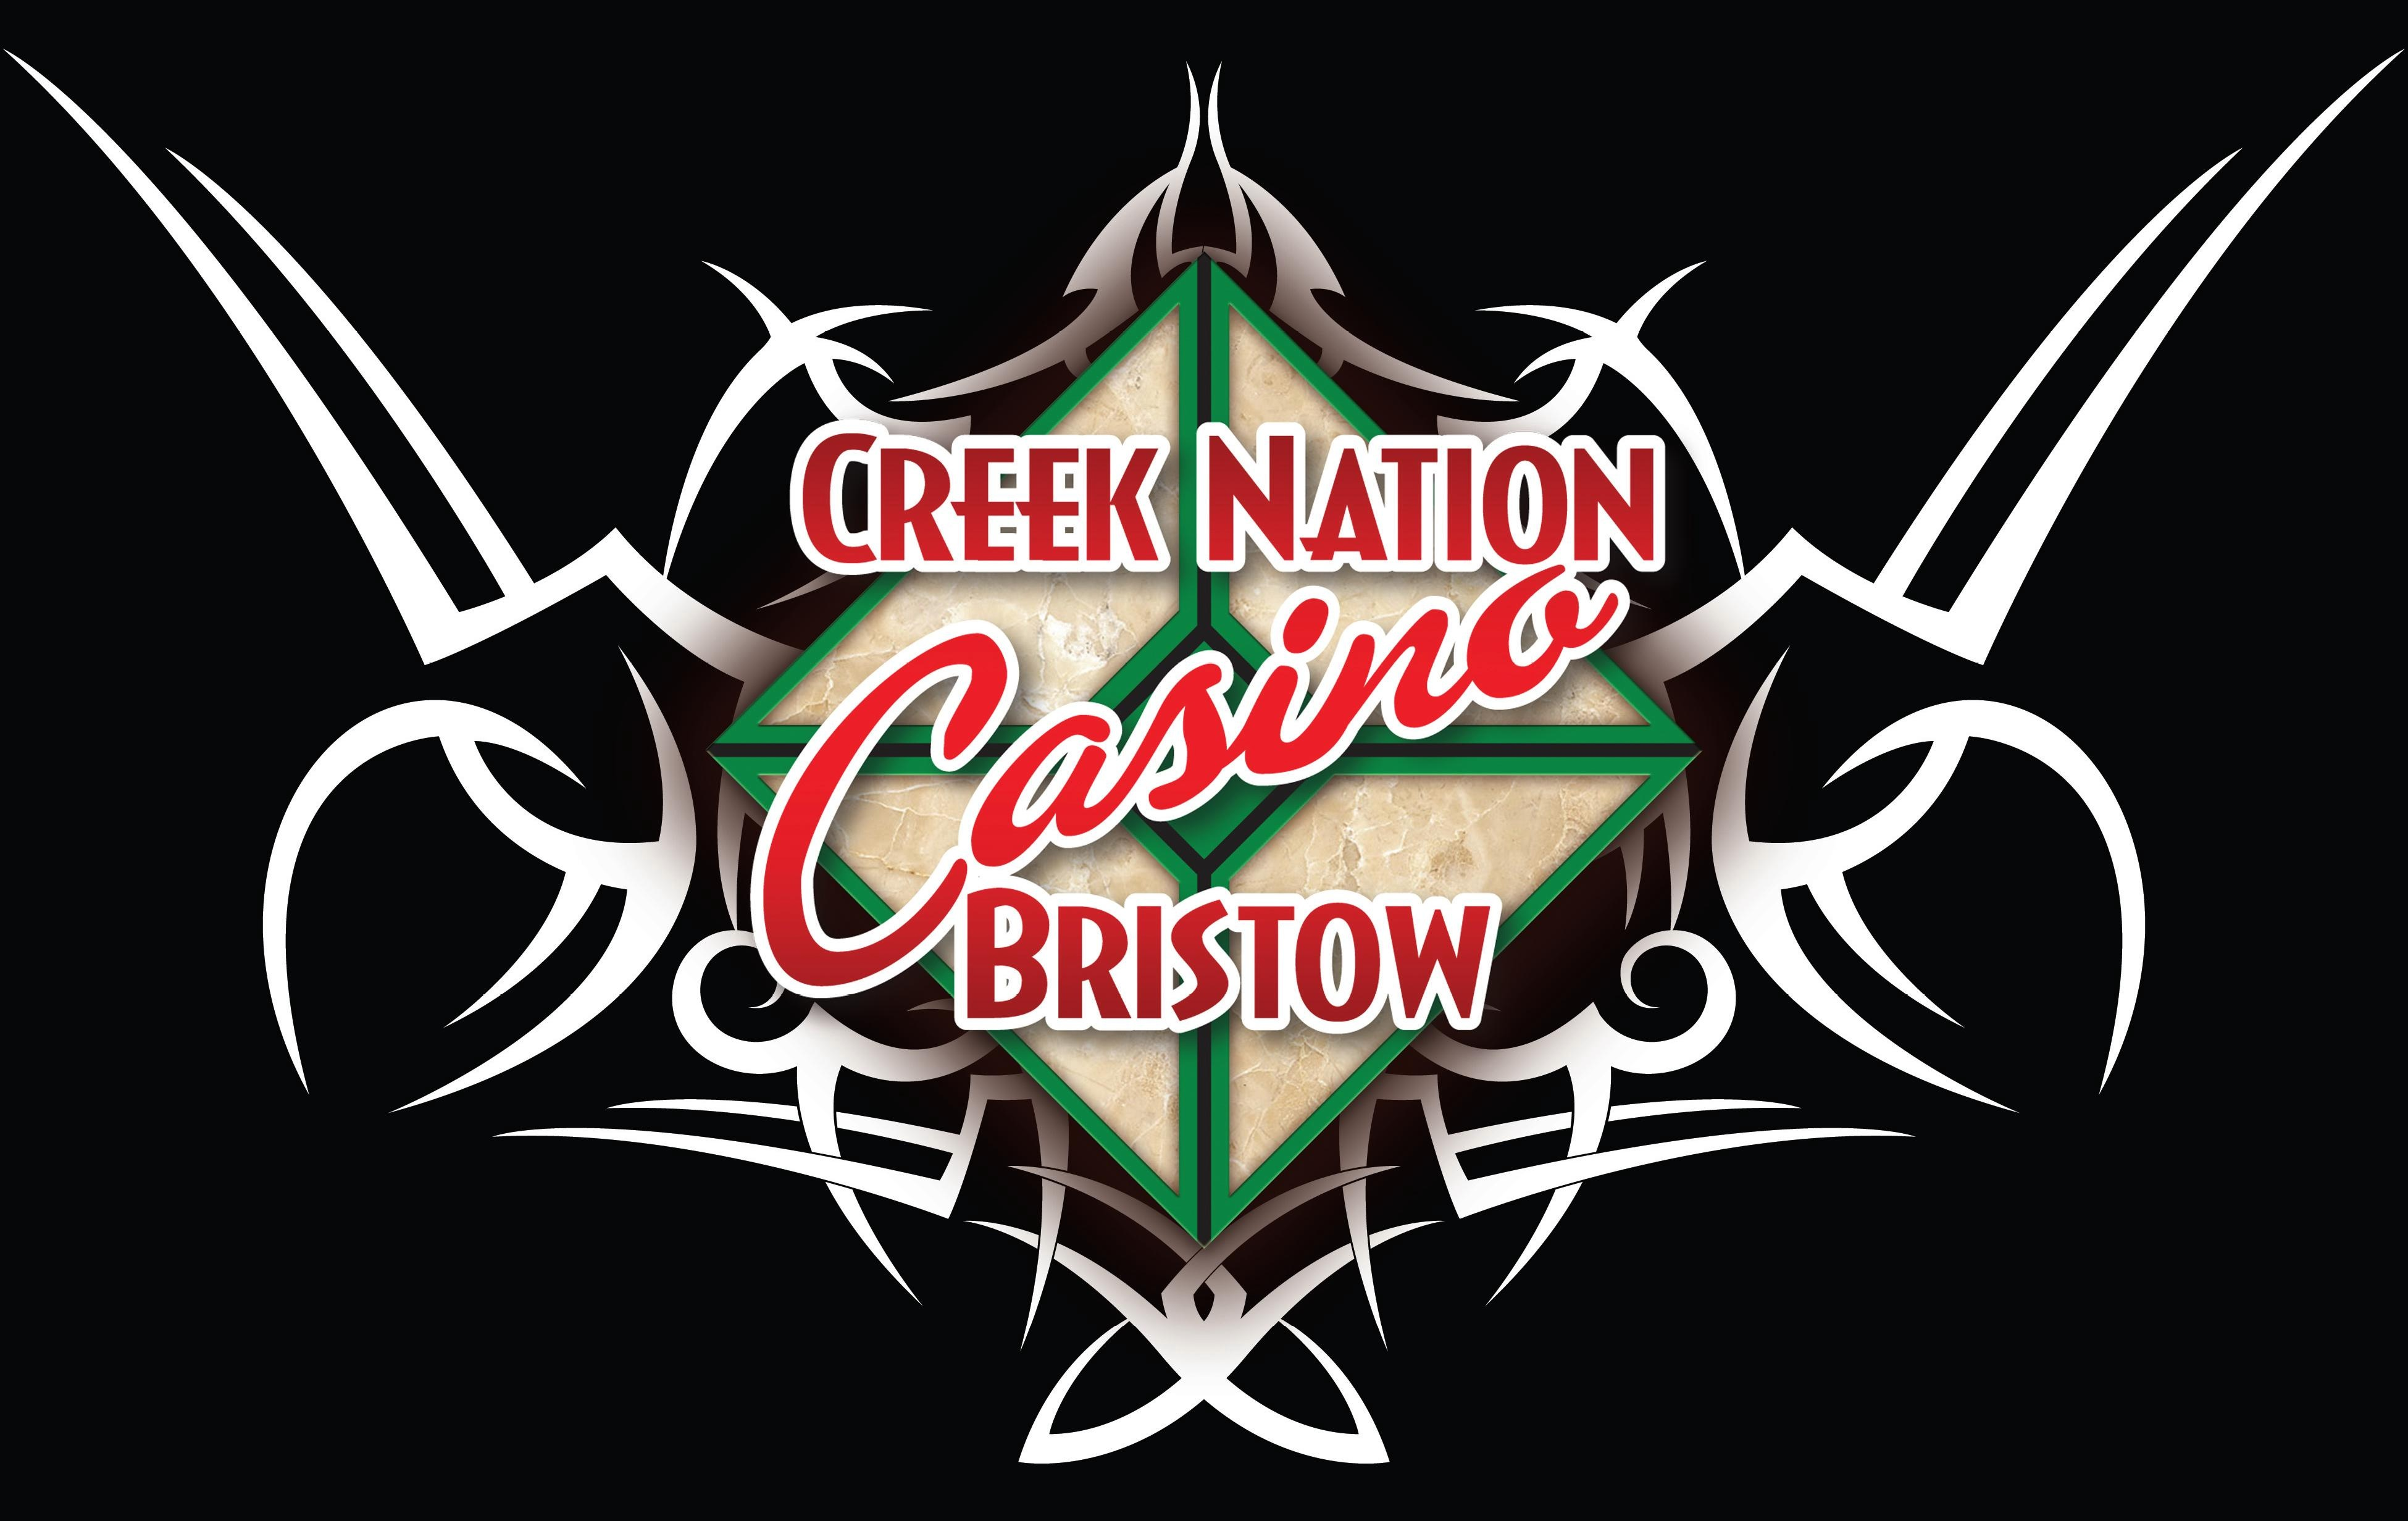 Creek Nation Casino of Bristow